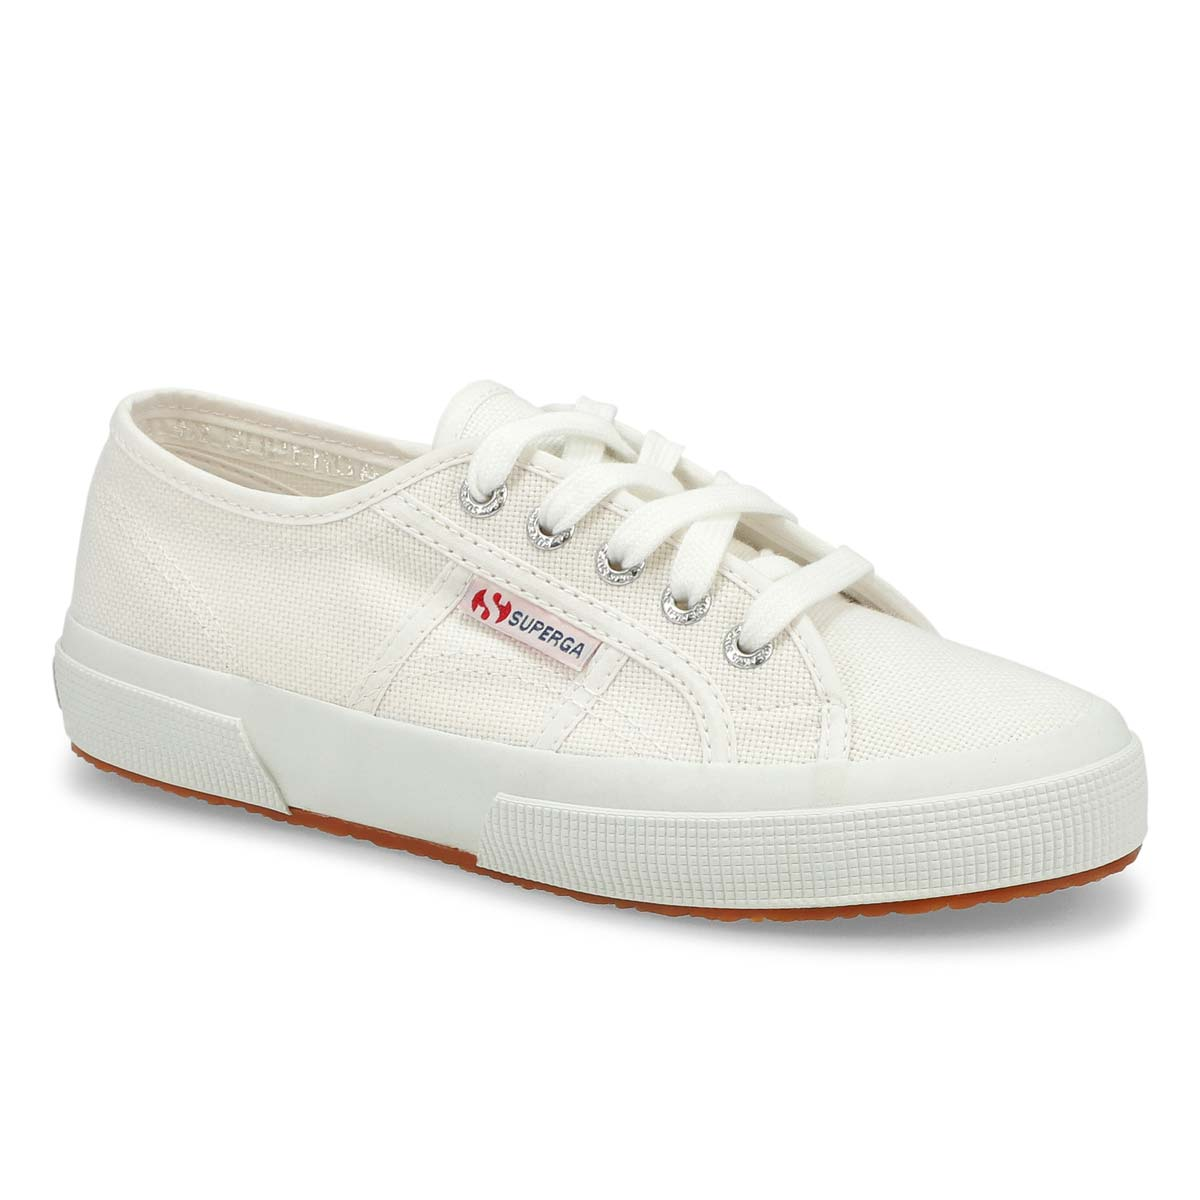 Women's COTU CLASSIC white canvas sneakers